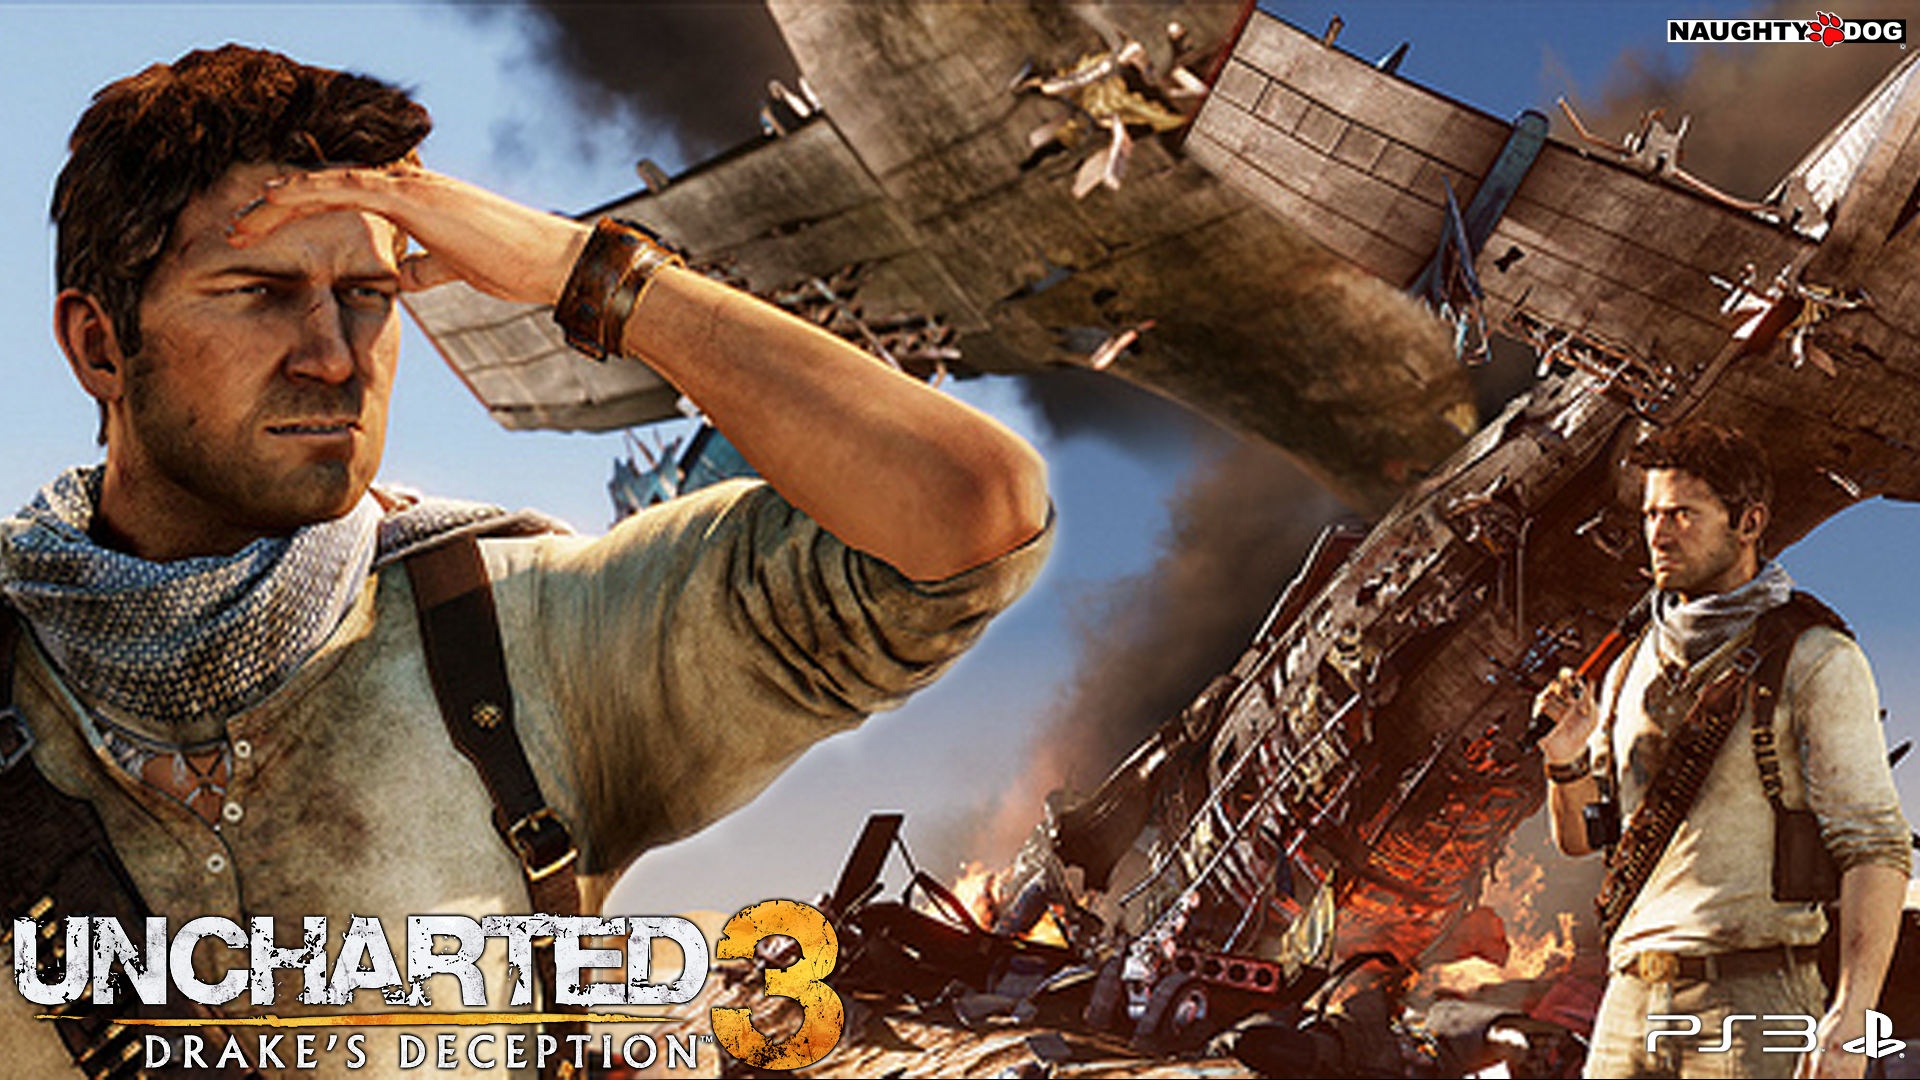 Uncharted 3 Drake'-s Deception Wallpapers | HD Wallpapers